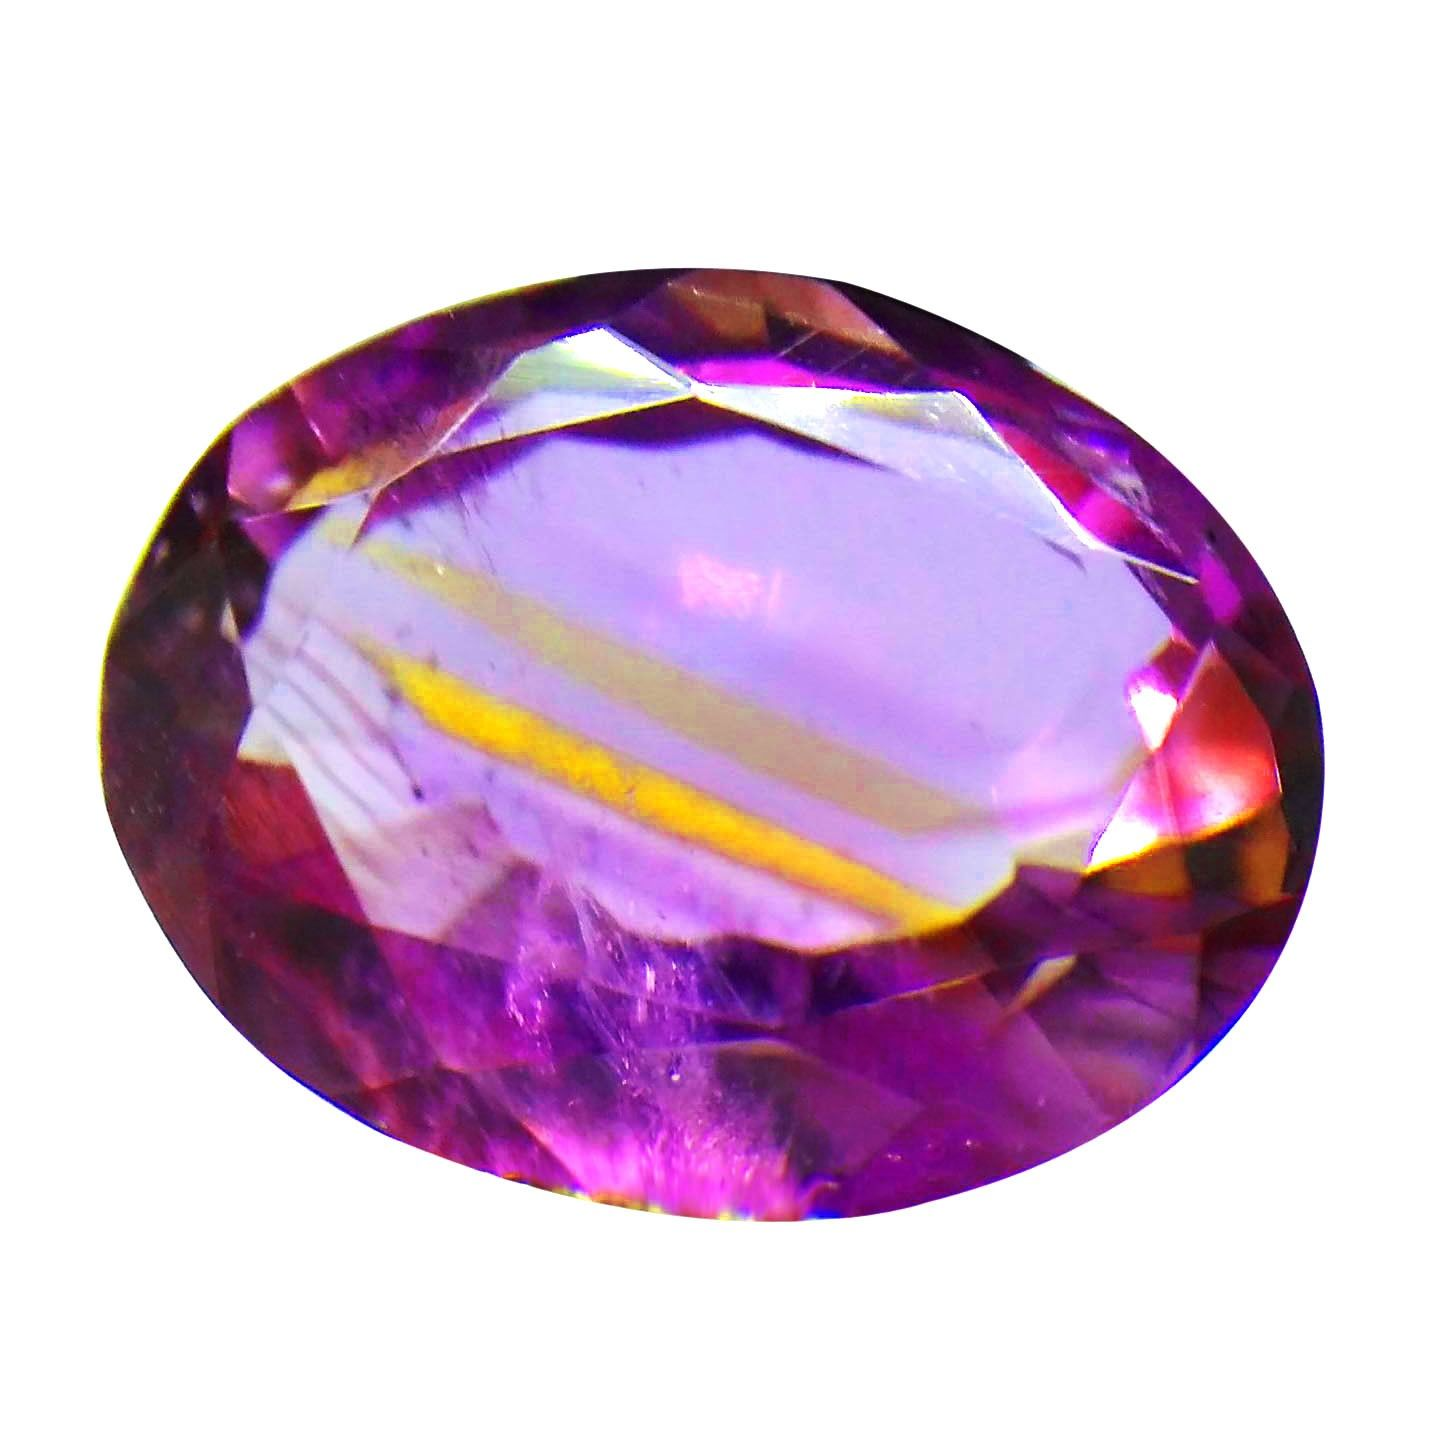 points color ring purple earth jewelry fb custom s image this gems amethyst and carat features a uruguayan showcasing photographing treasury gemstone